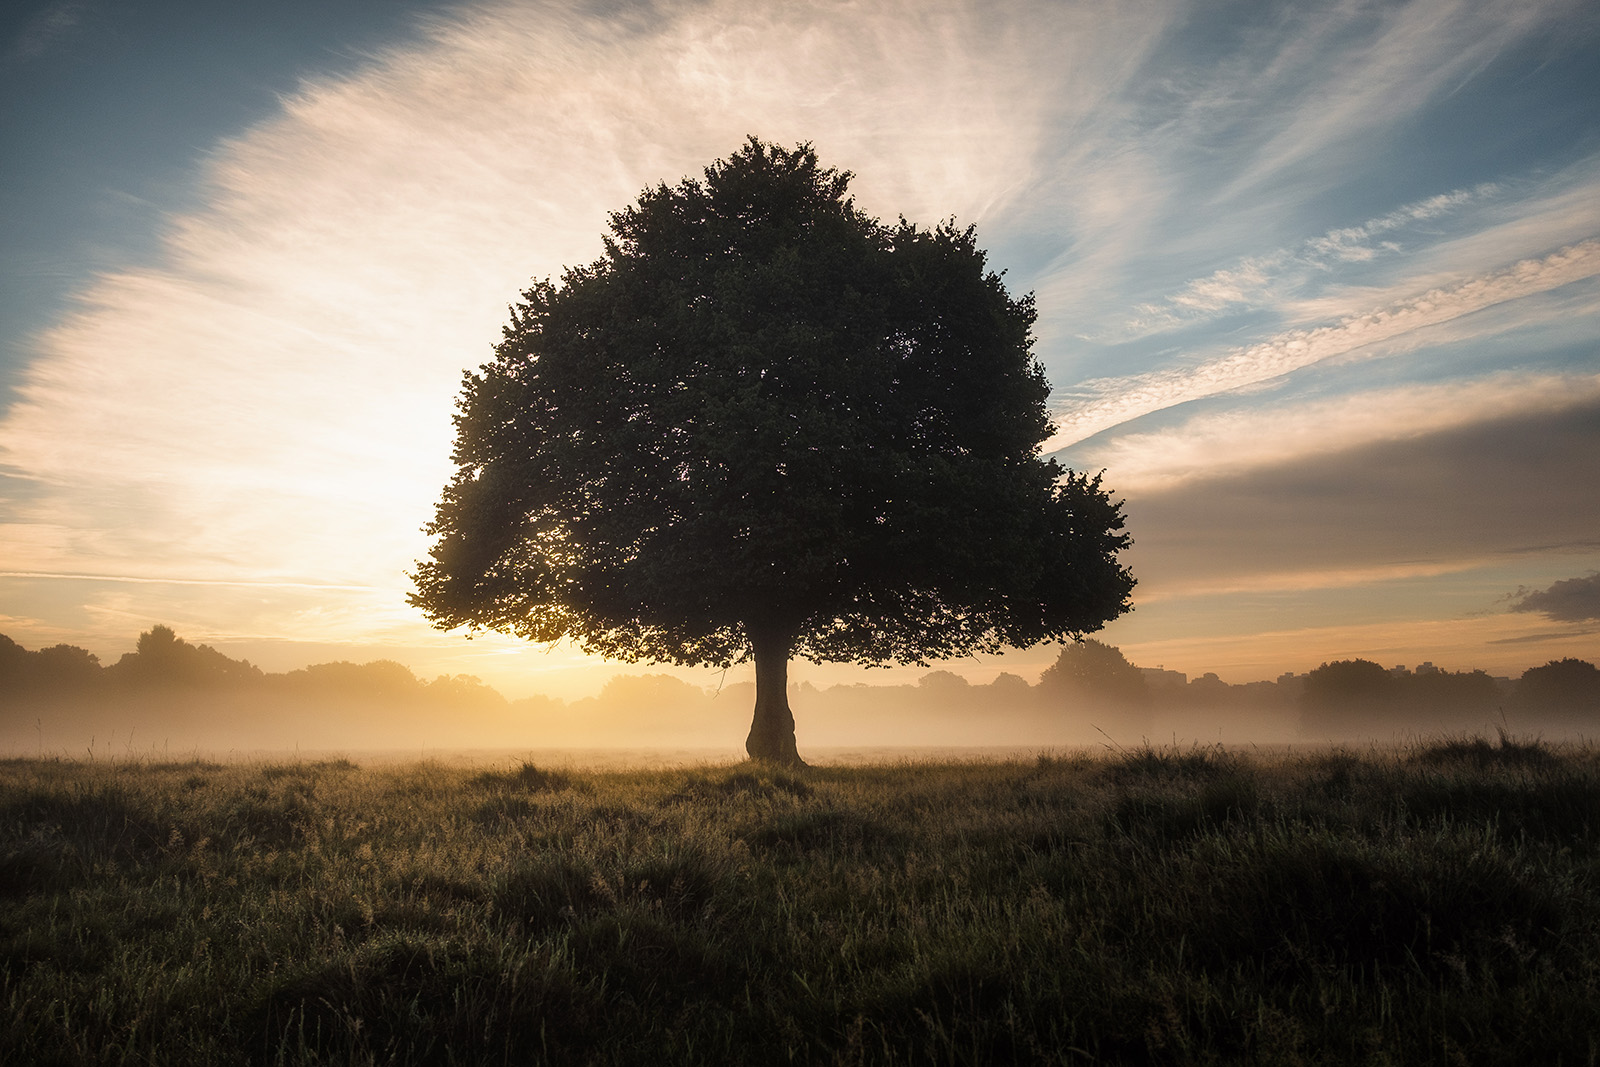 Dawn in Richmond Park. Photograph by Simon Wilkes, 2017